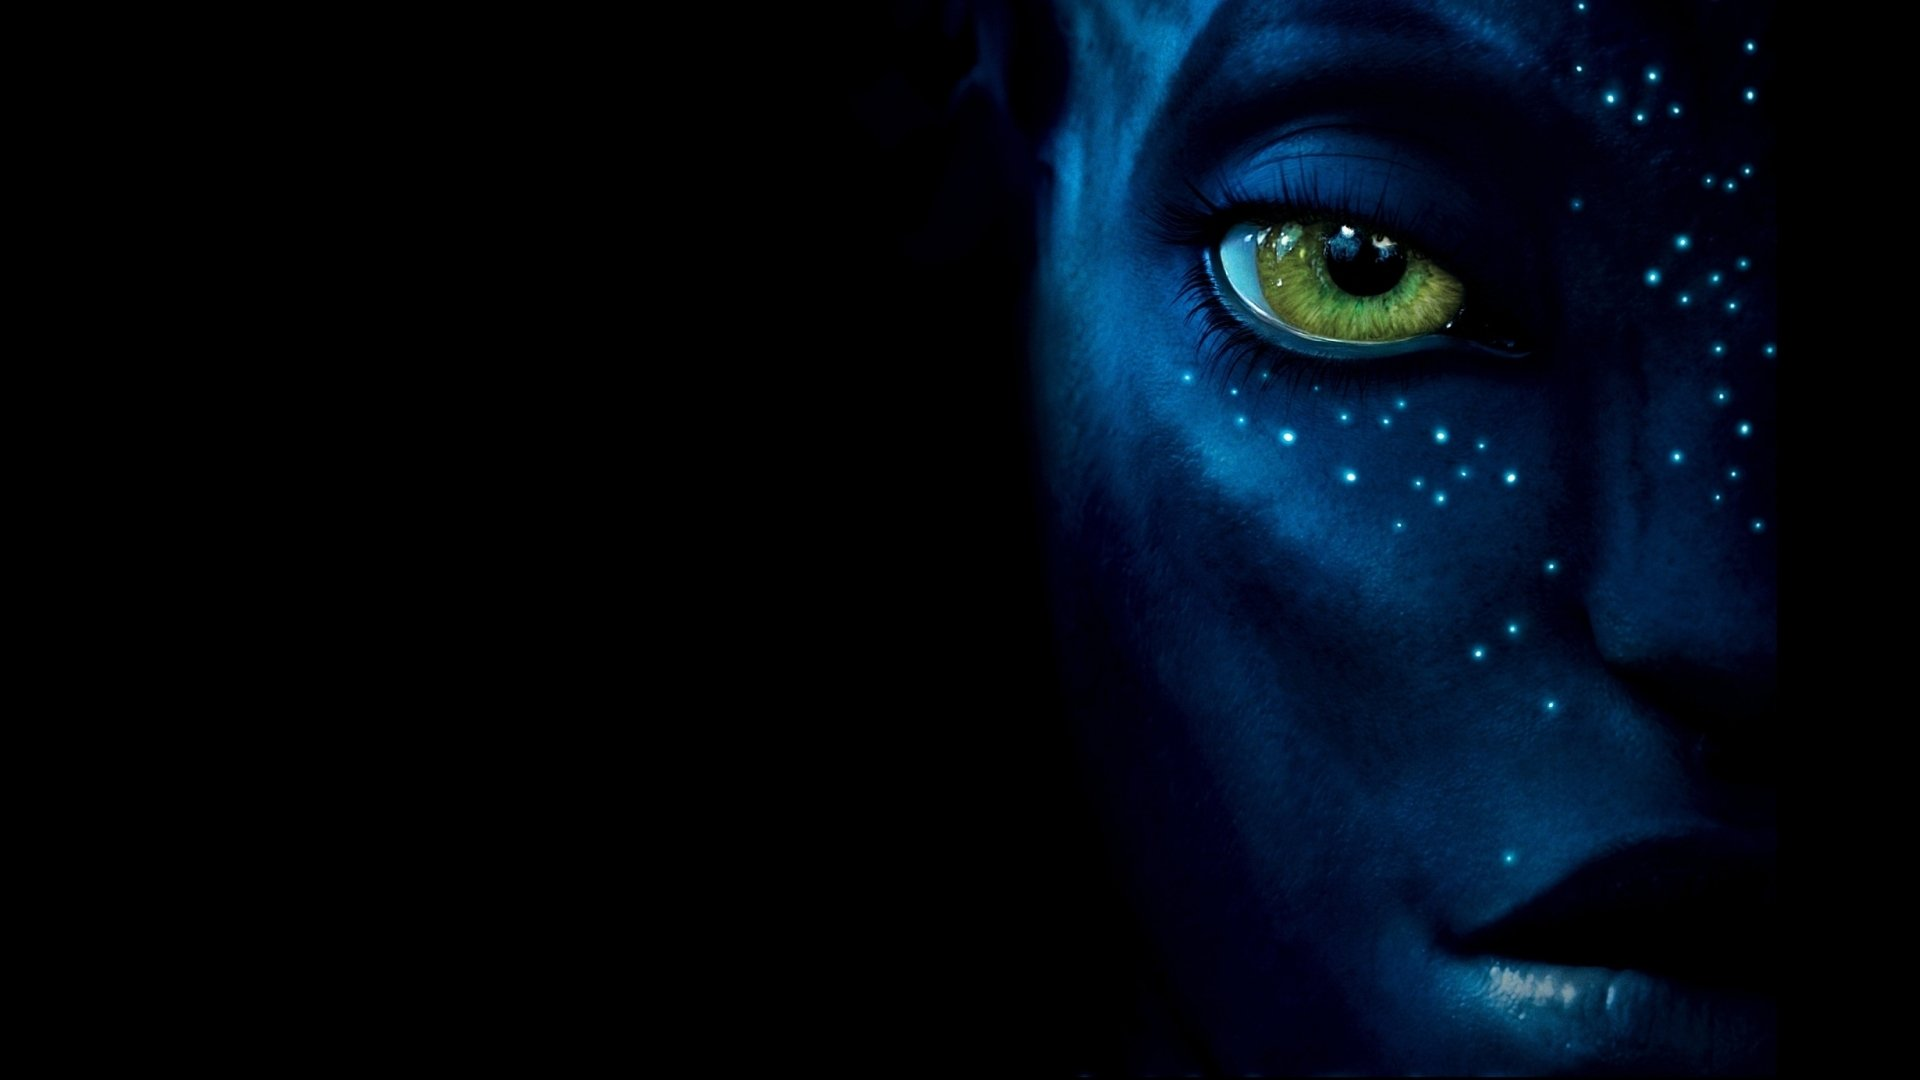 Avatar Computer Wallpapers, Desktop Backgrounds | 1920x1080 | ID:76146